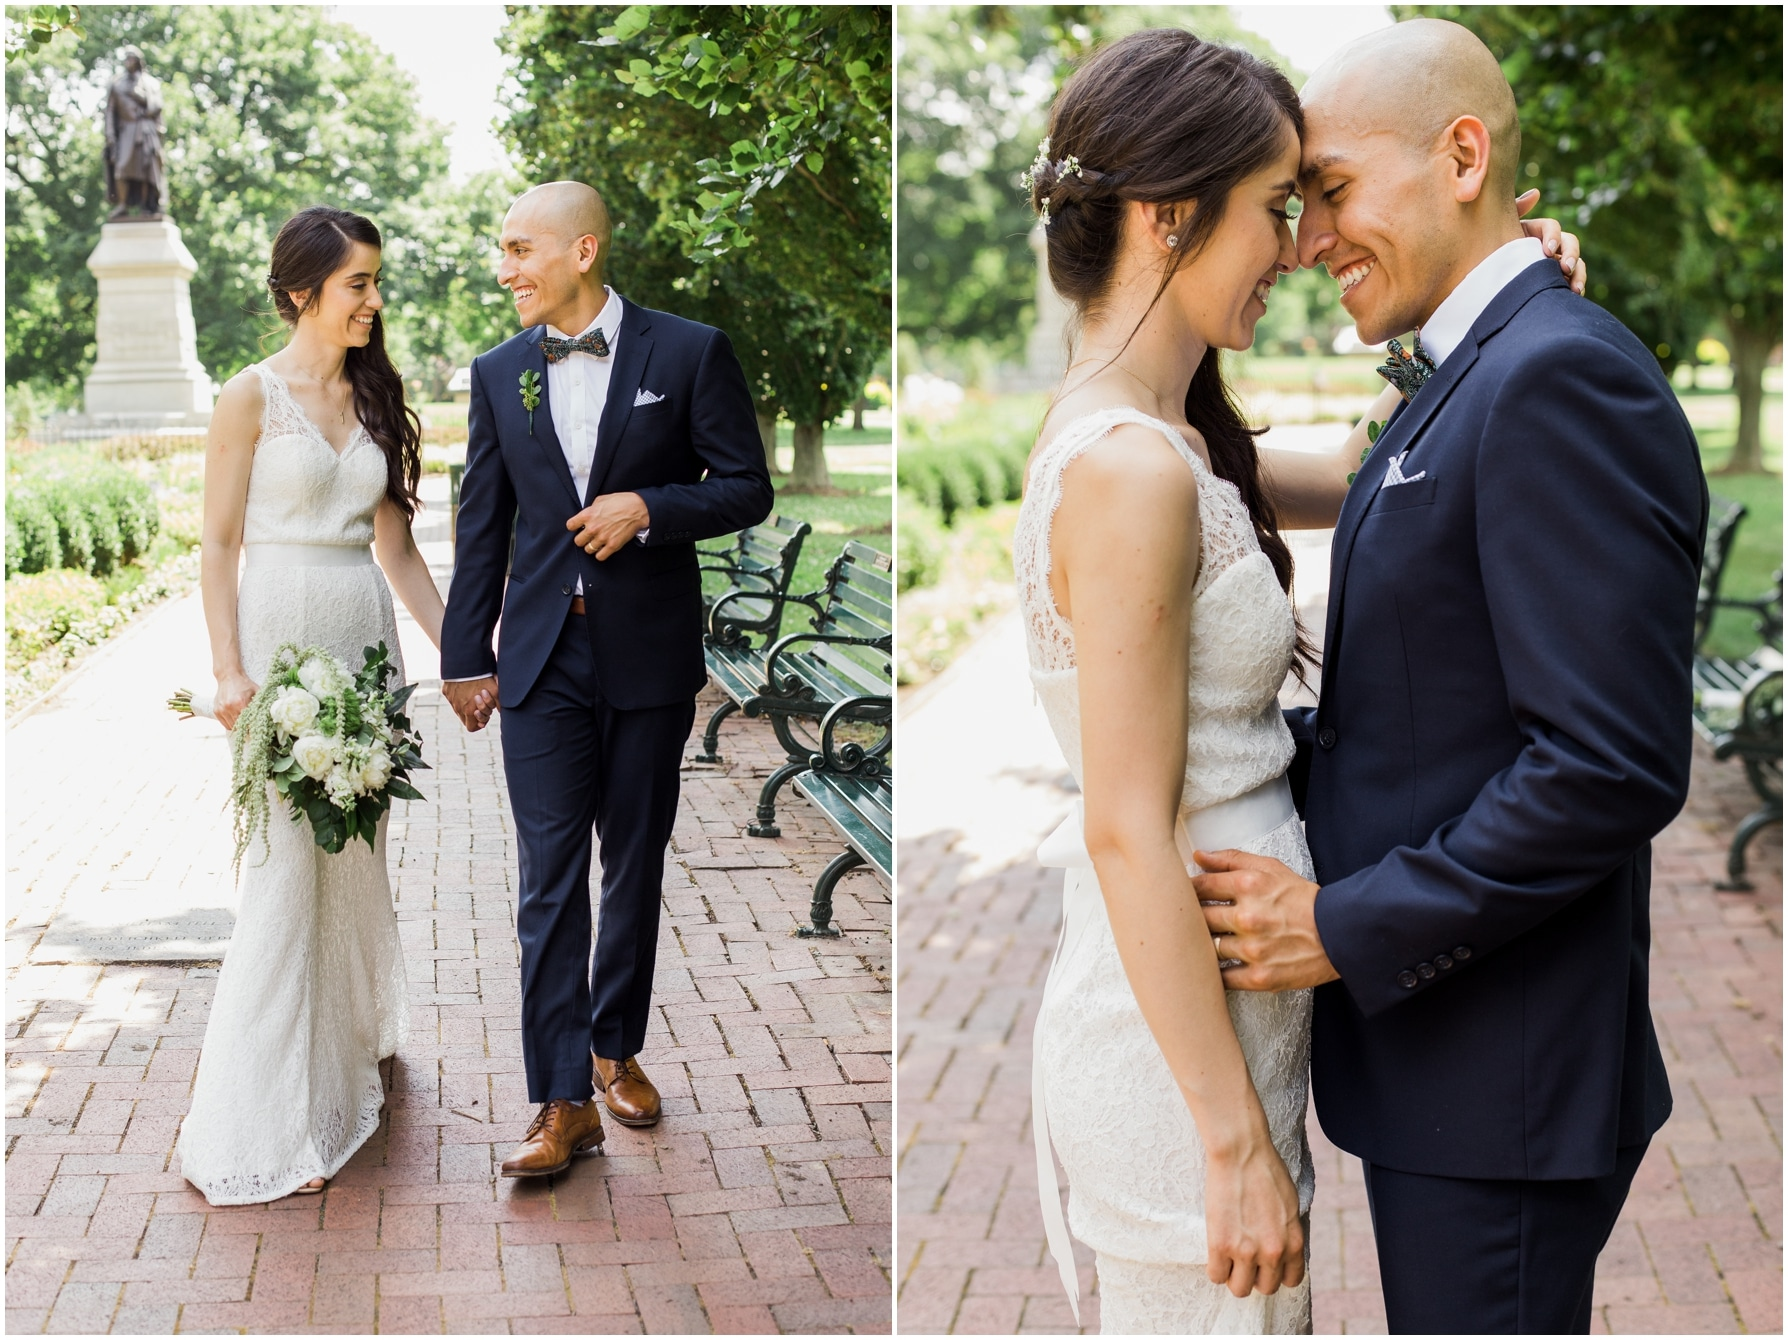 adam lowe photography, columbus , ohio, wedding, style, love , bride and groom, stylish, wedding dress, wedding suit,